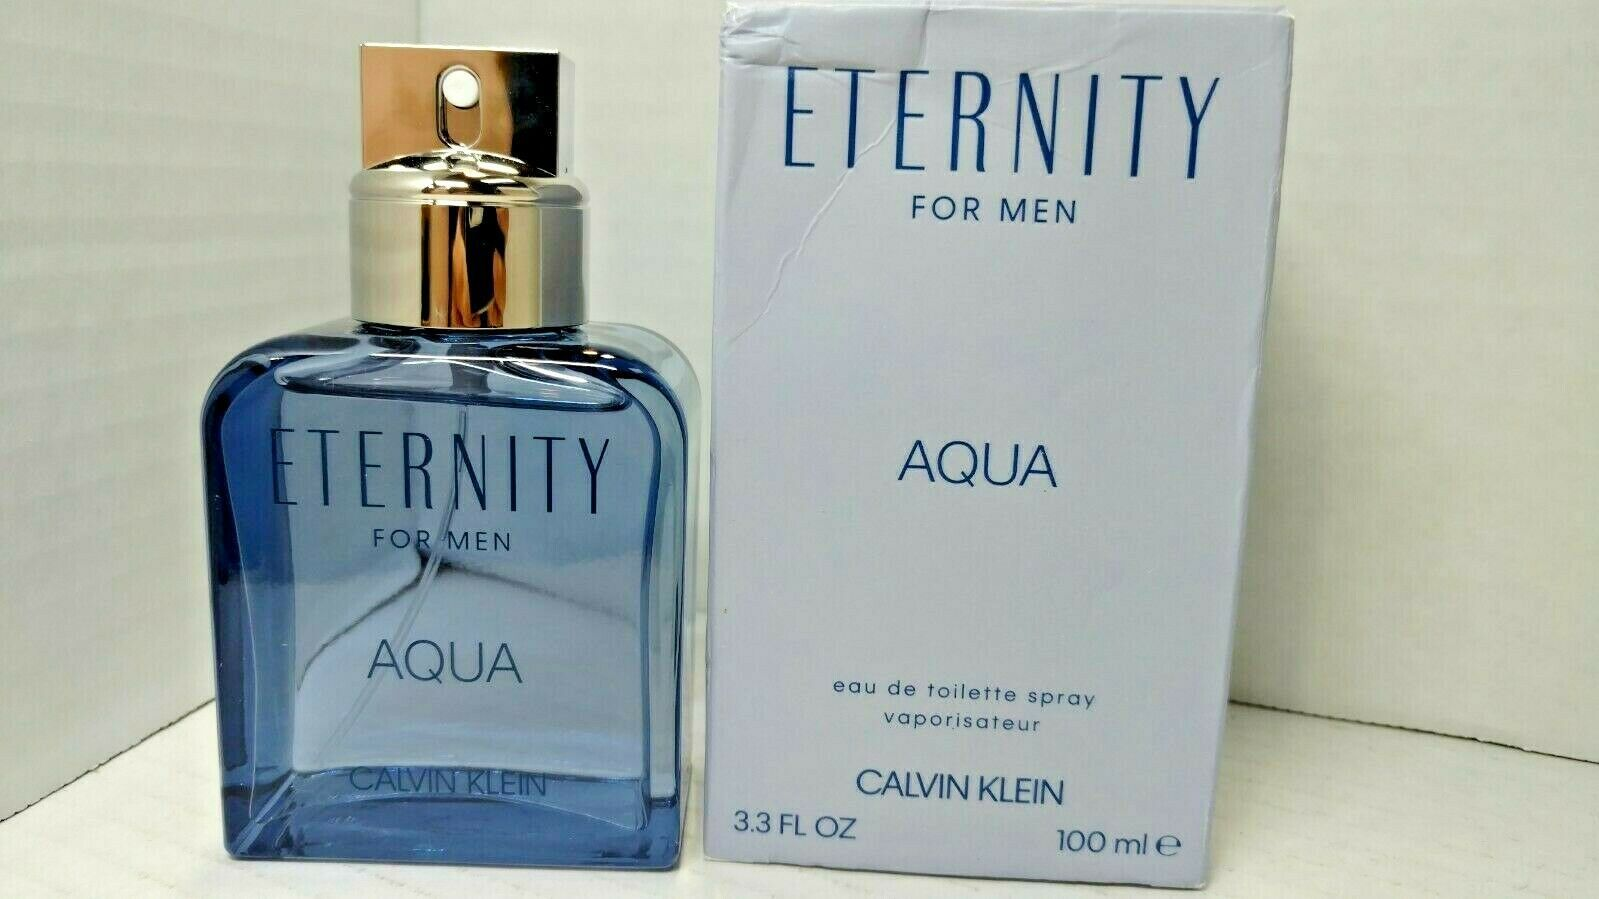 Eternity Aqua by Calvin Klein for Men 3.3 oz EDT Spray READ COMMENT